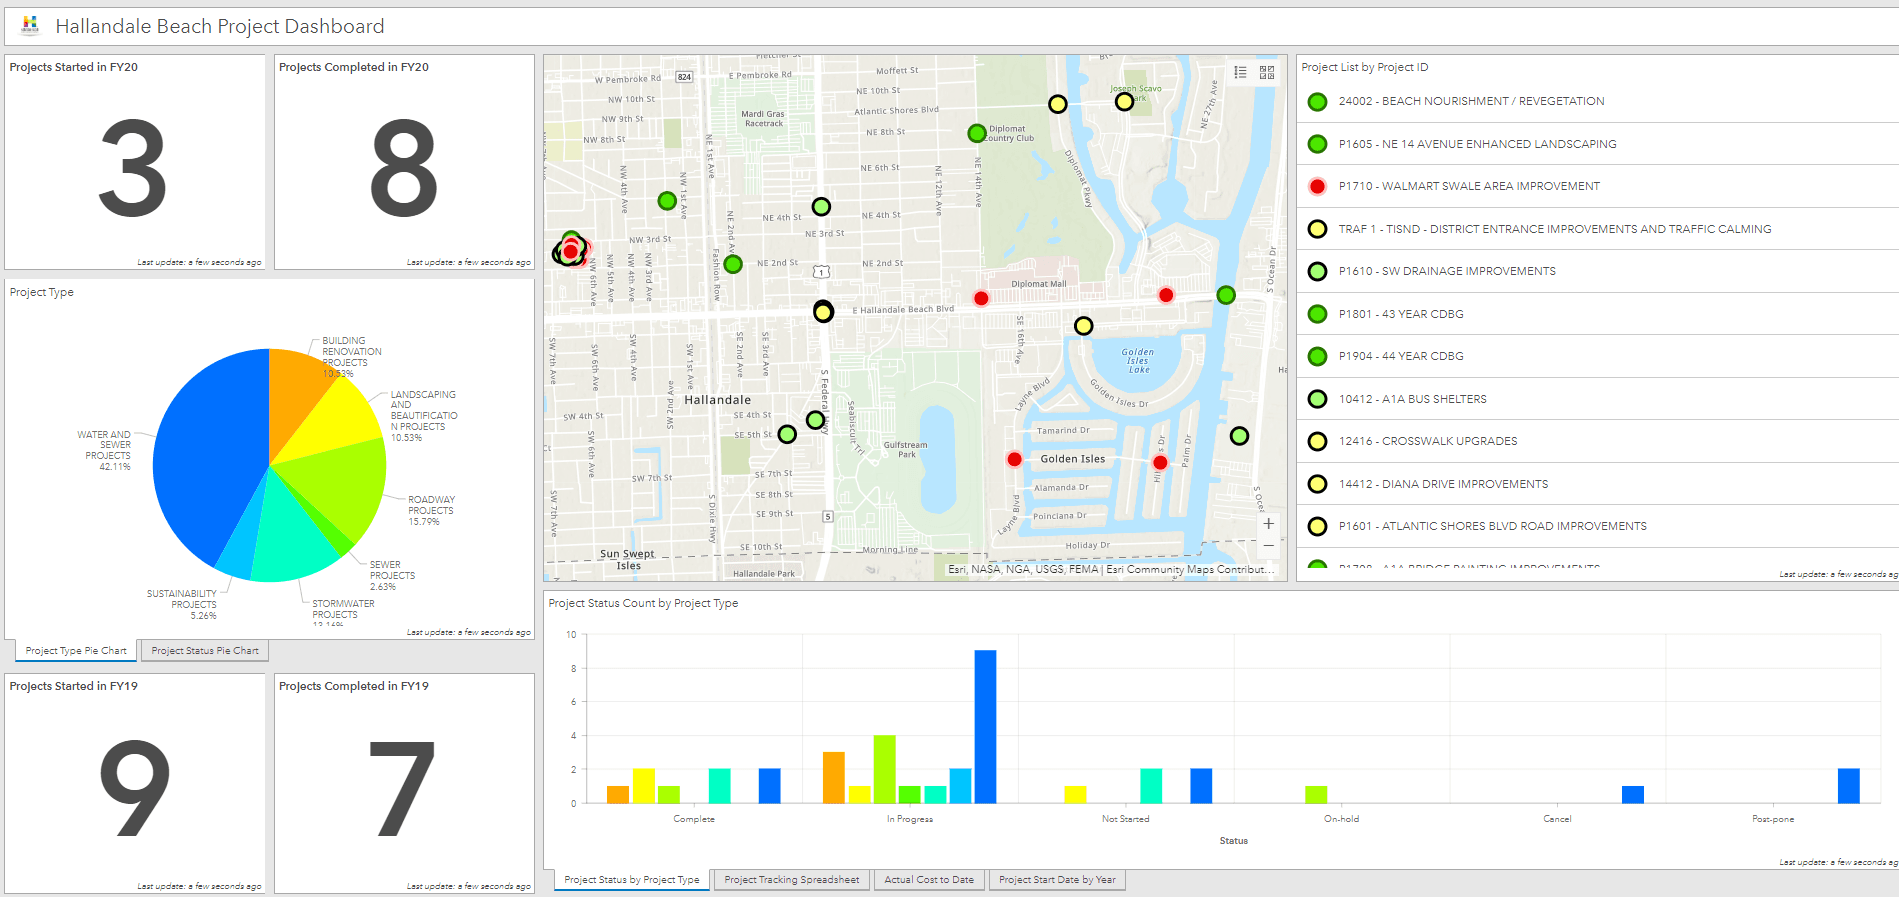 Hallandale Beach Project Dashboard